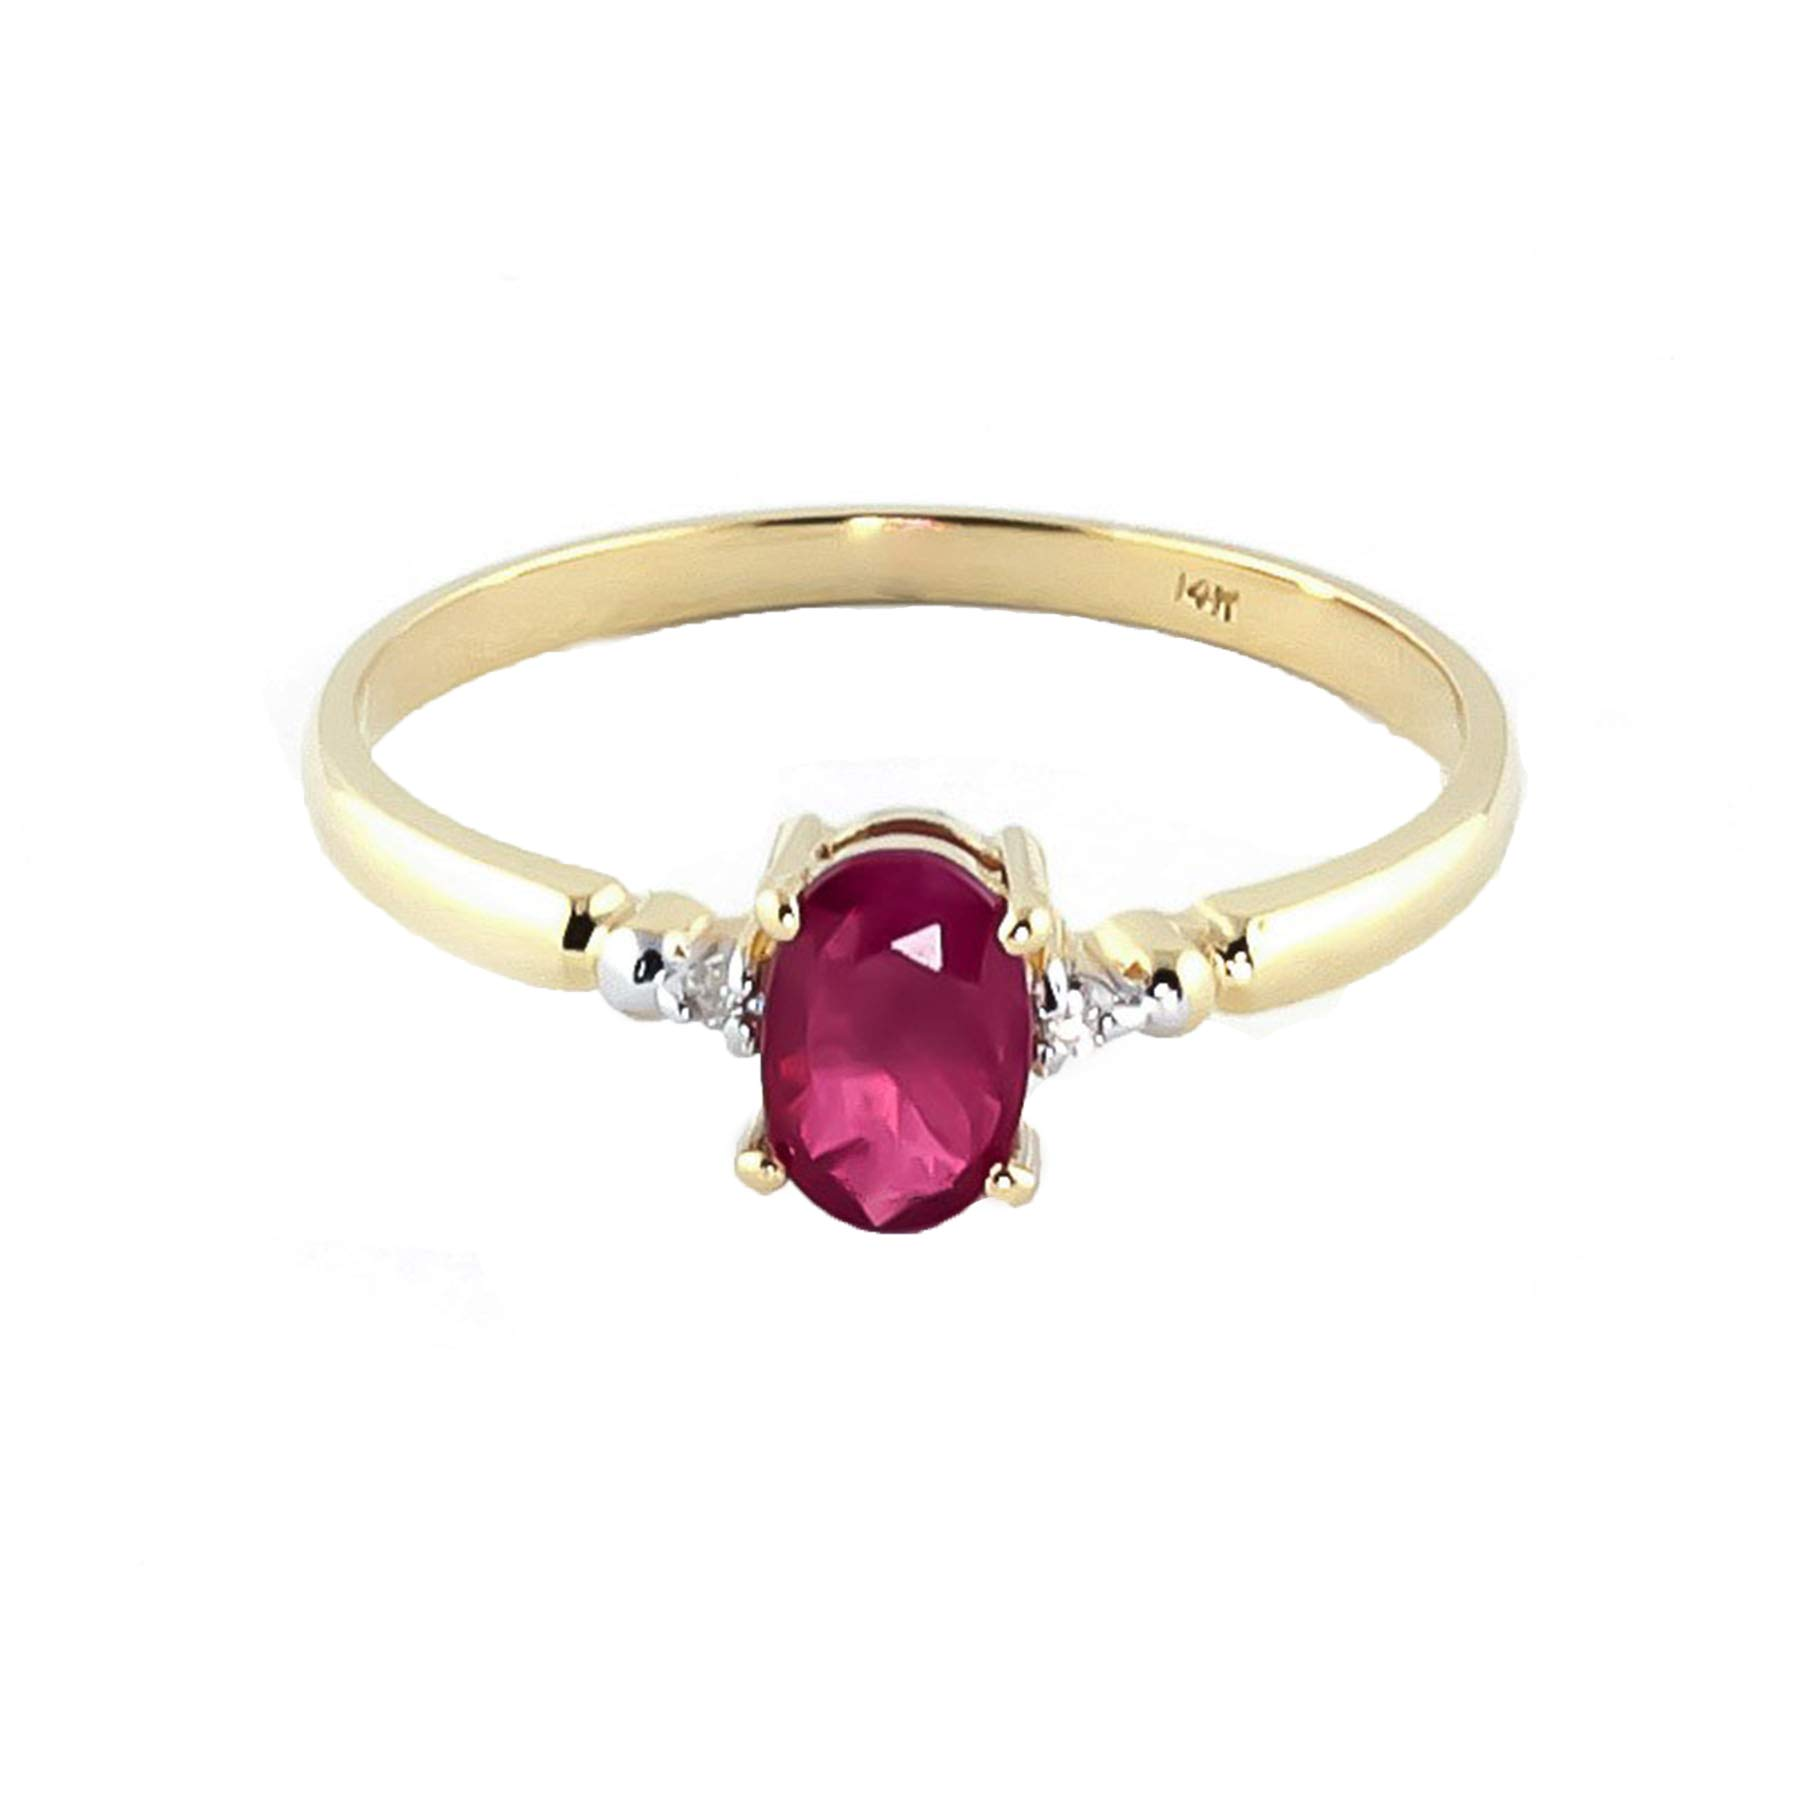 Galaxy Gold 14K Solid Yellow Gold Ring with Natural 0.51 Carat Diamond Ruby (6.0)